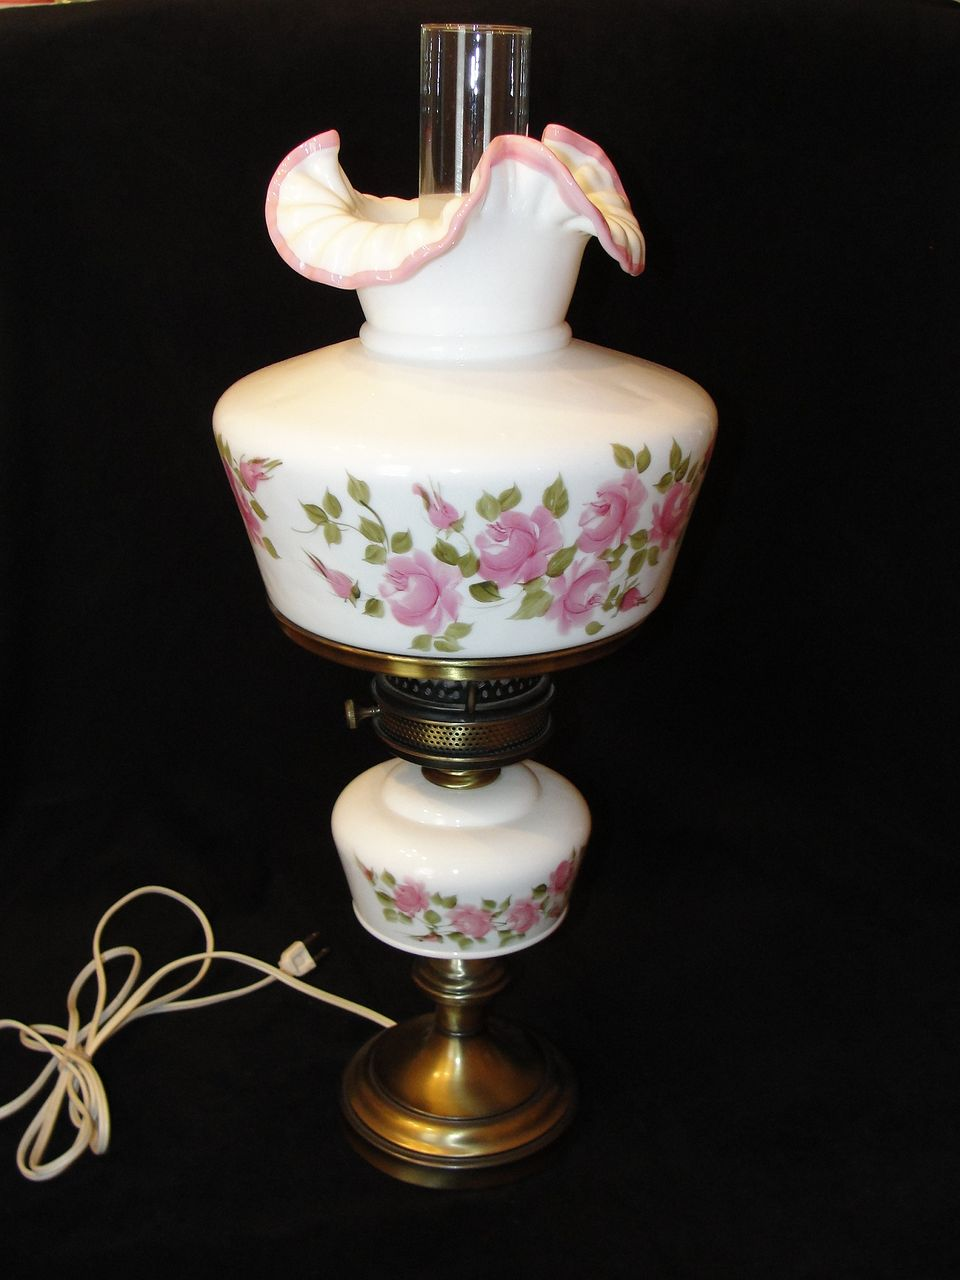 Rare Fenton Roses on Apple Blossom Crested Lamp